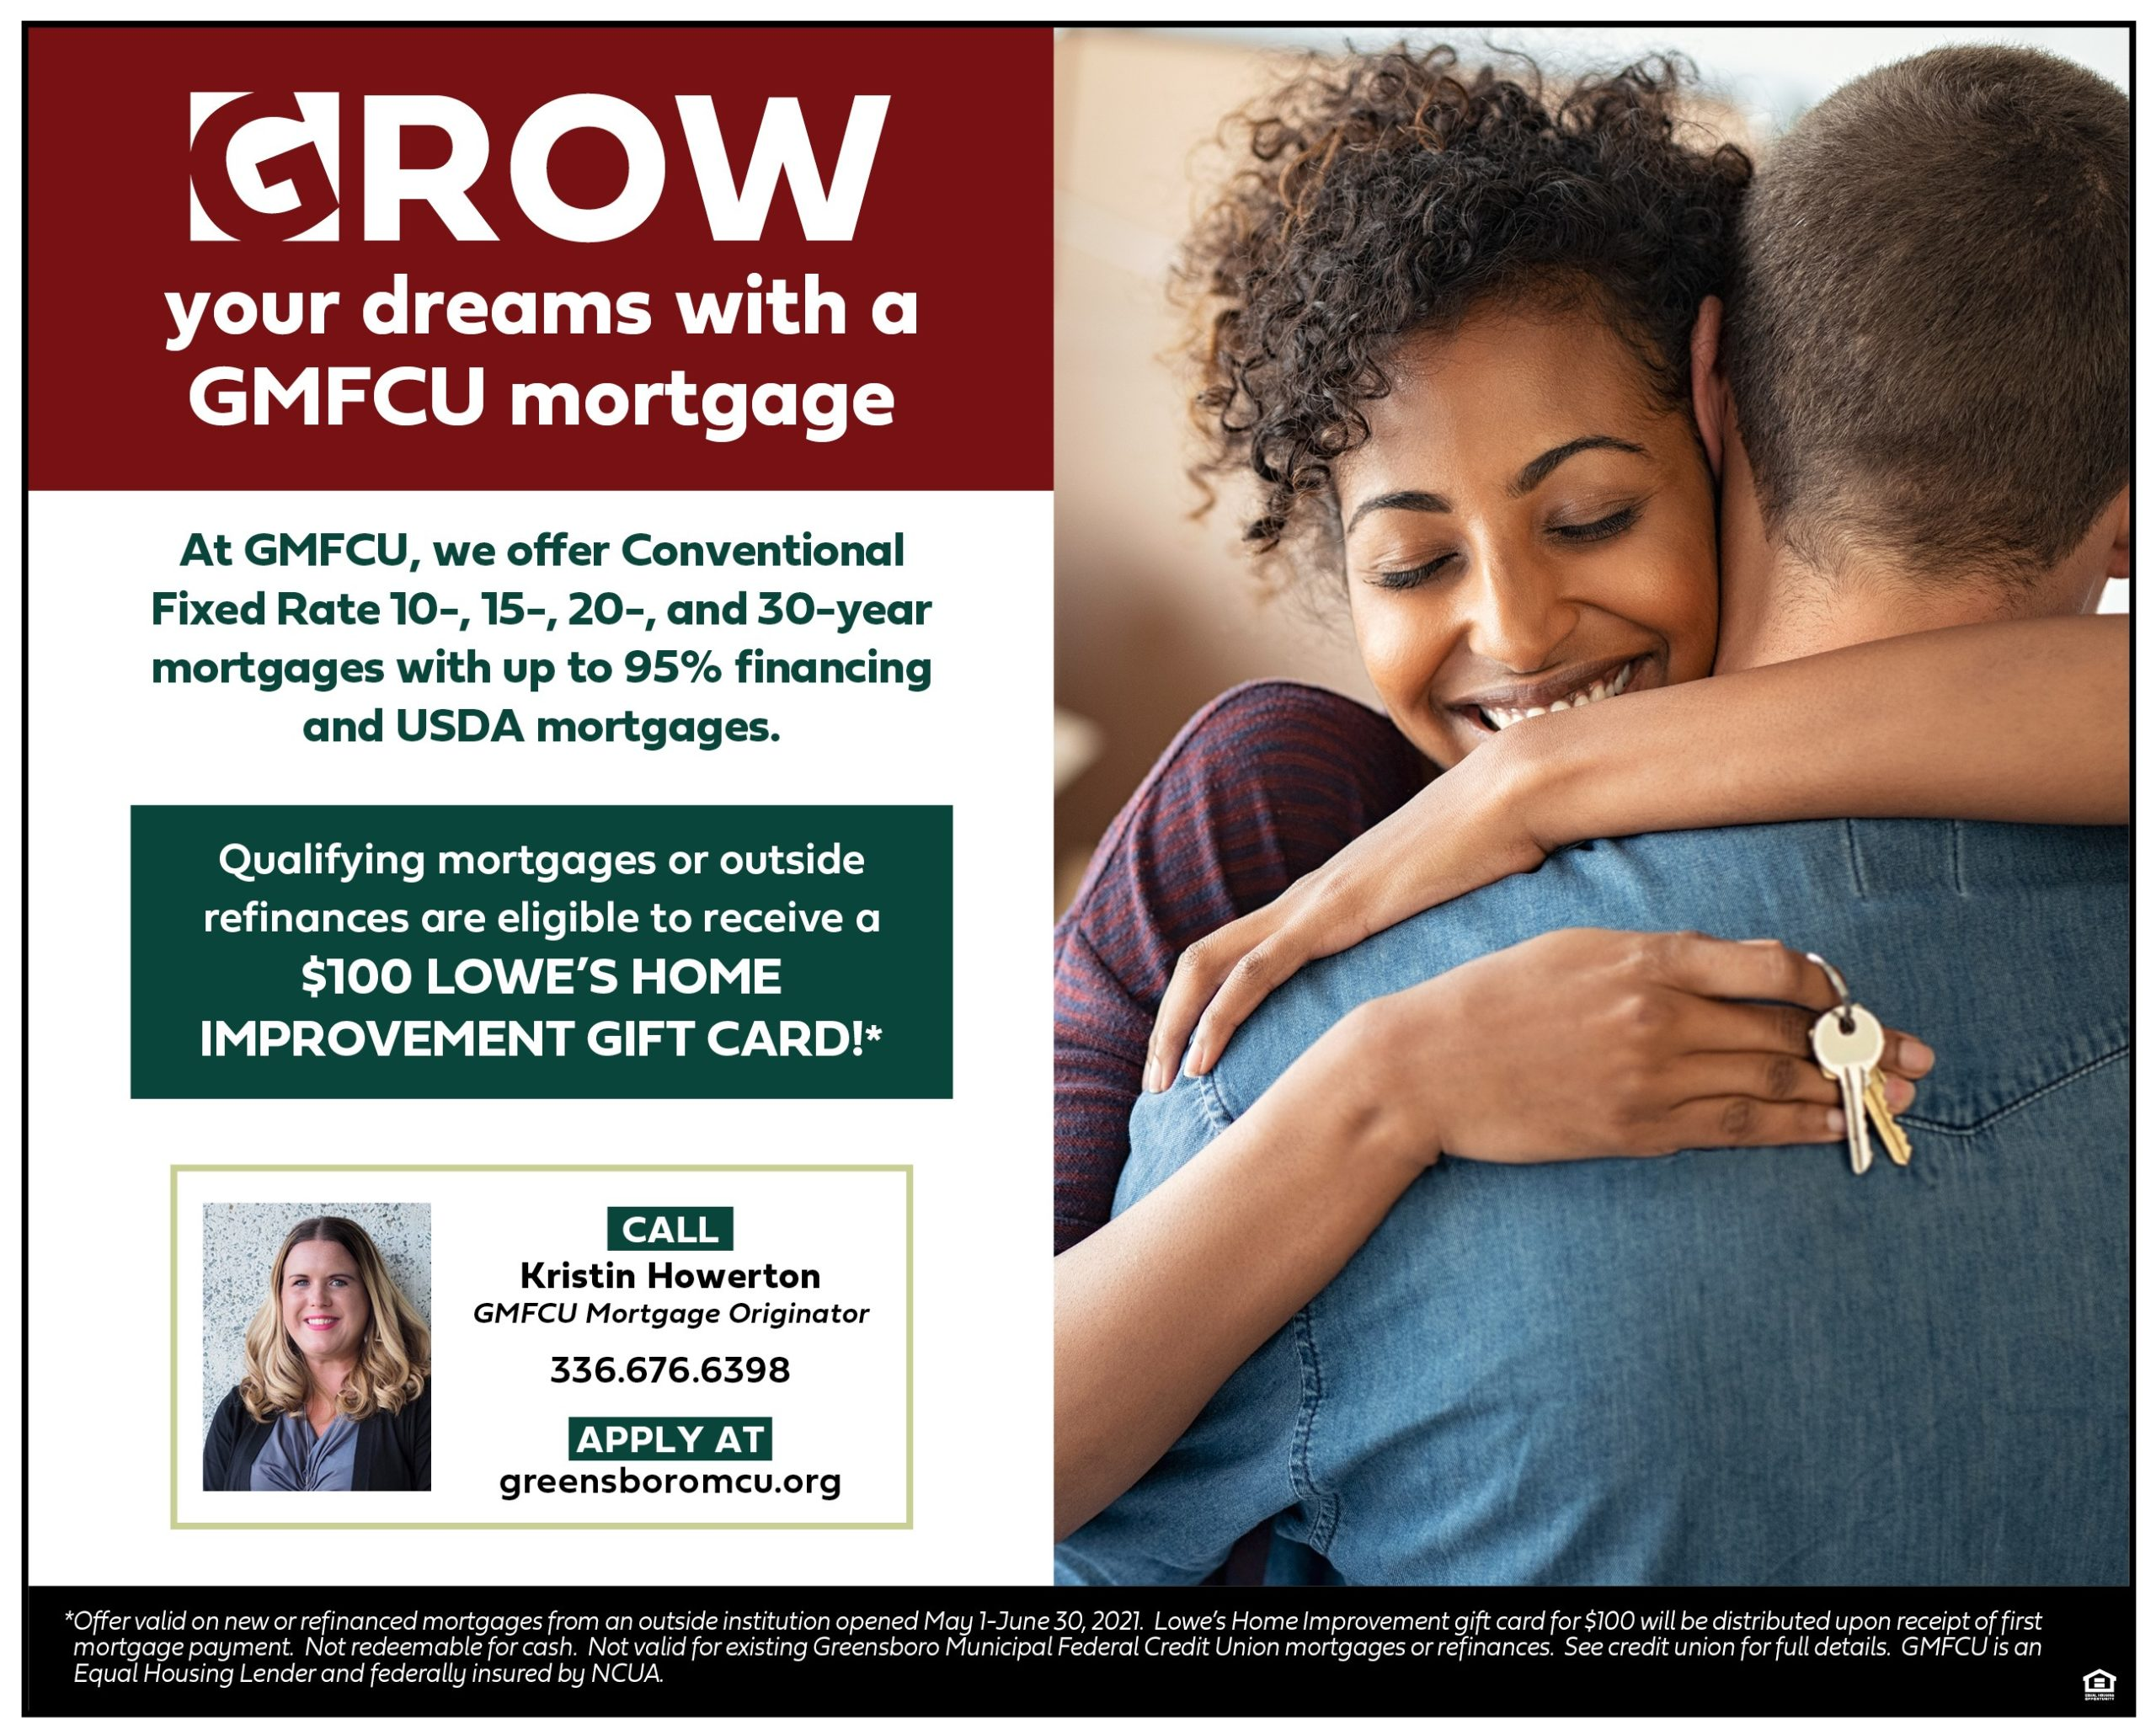 Grow your dreams with a GMFCU Mortgage